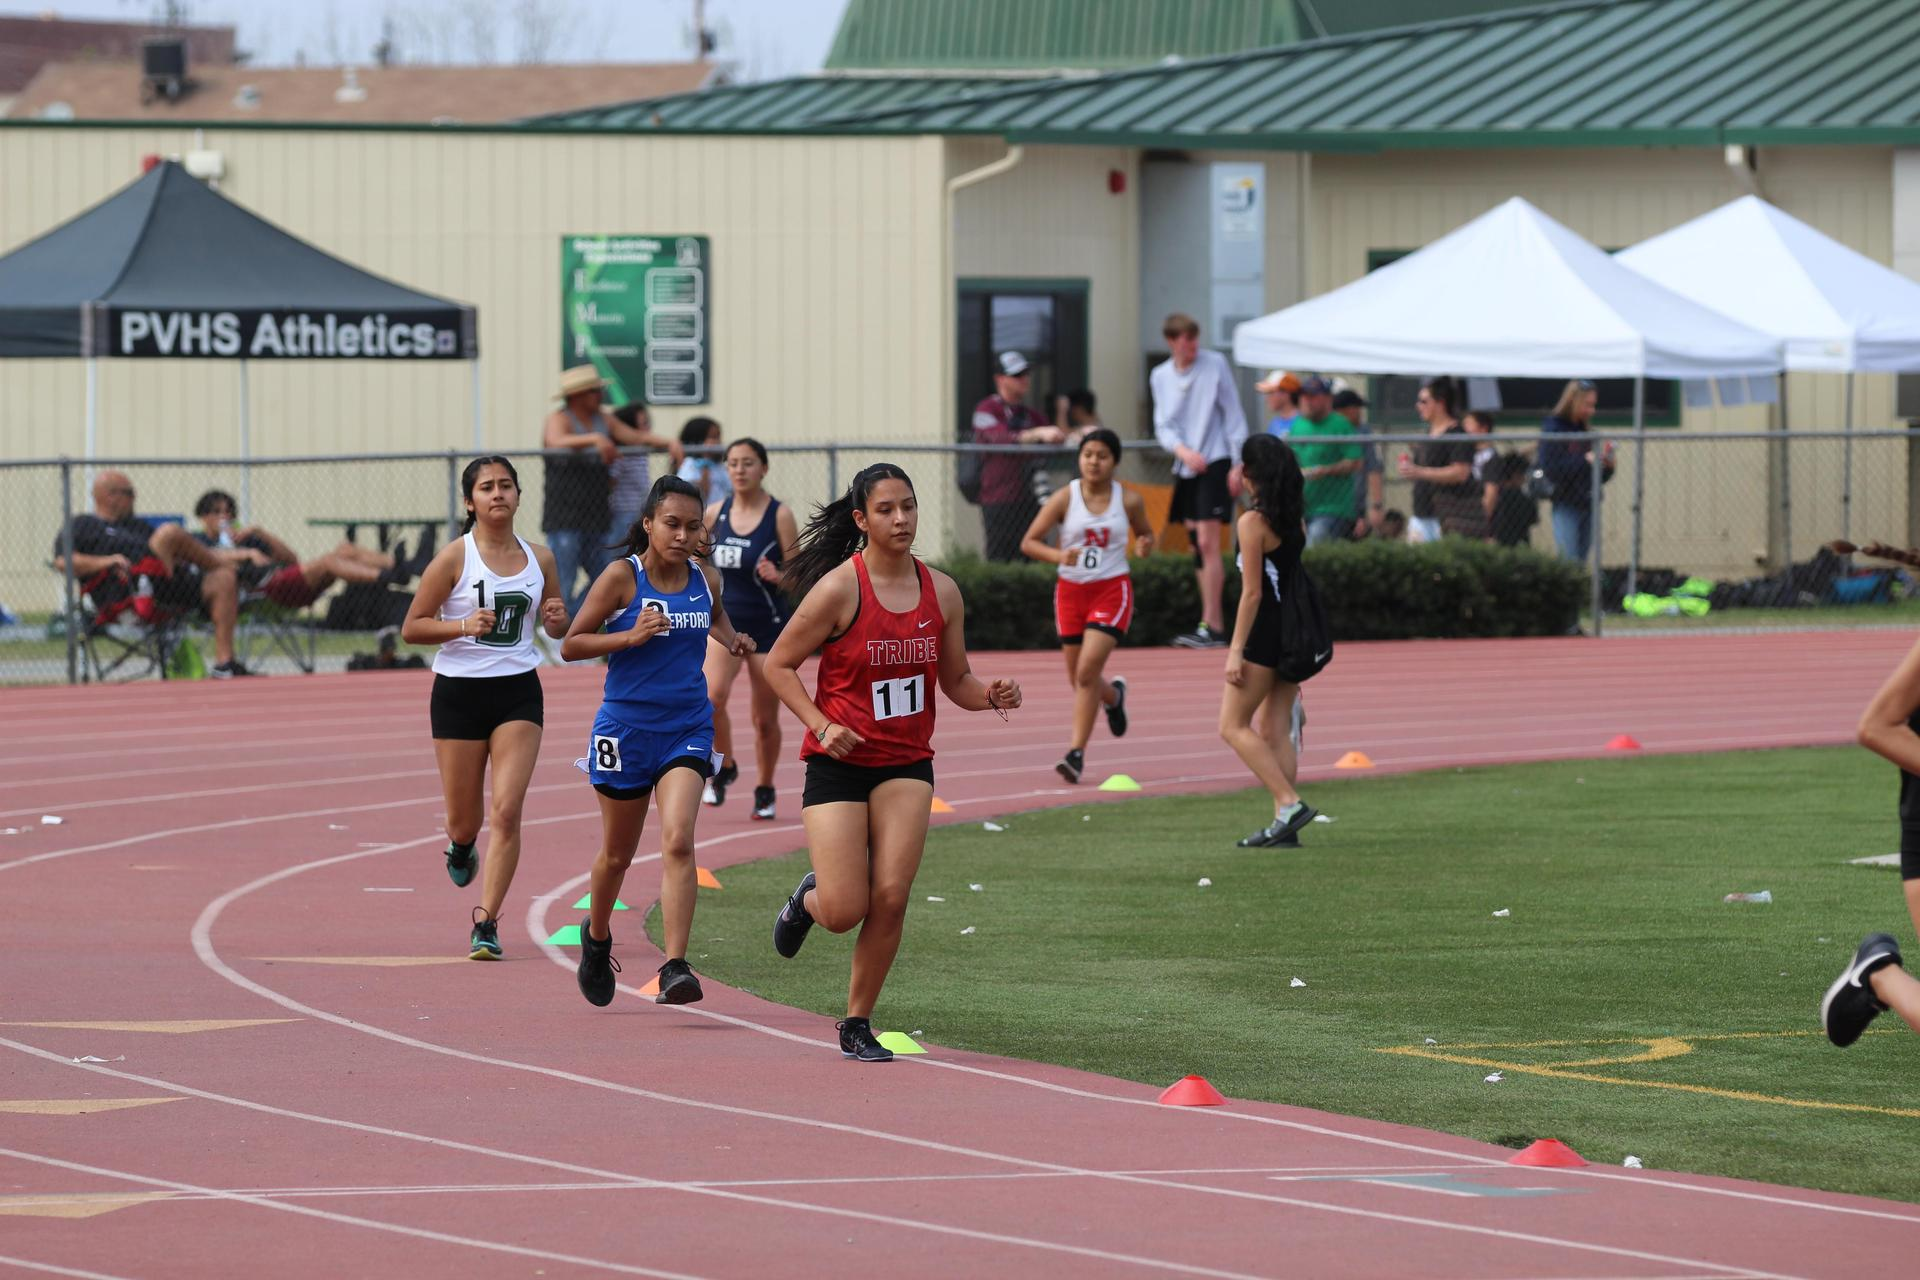 Chowchilla athletes competing in Dinuba